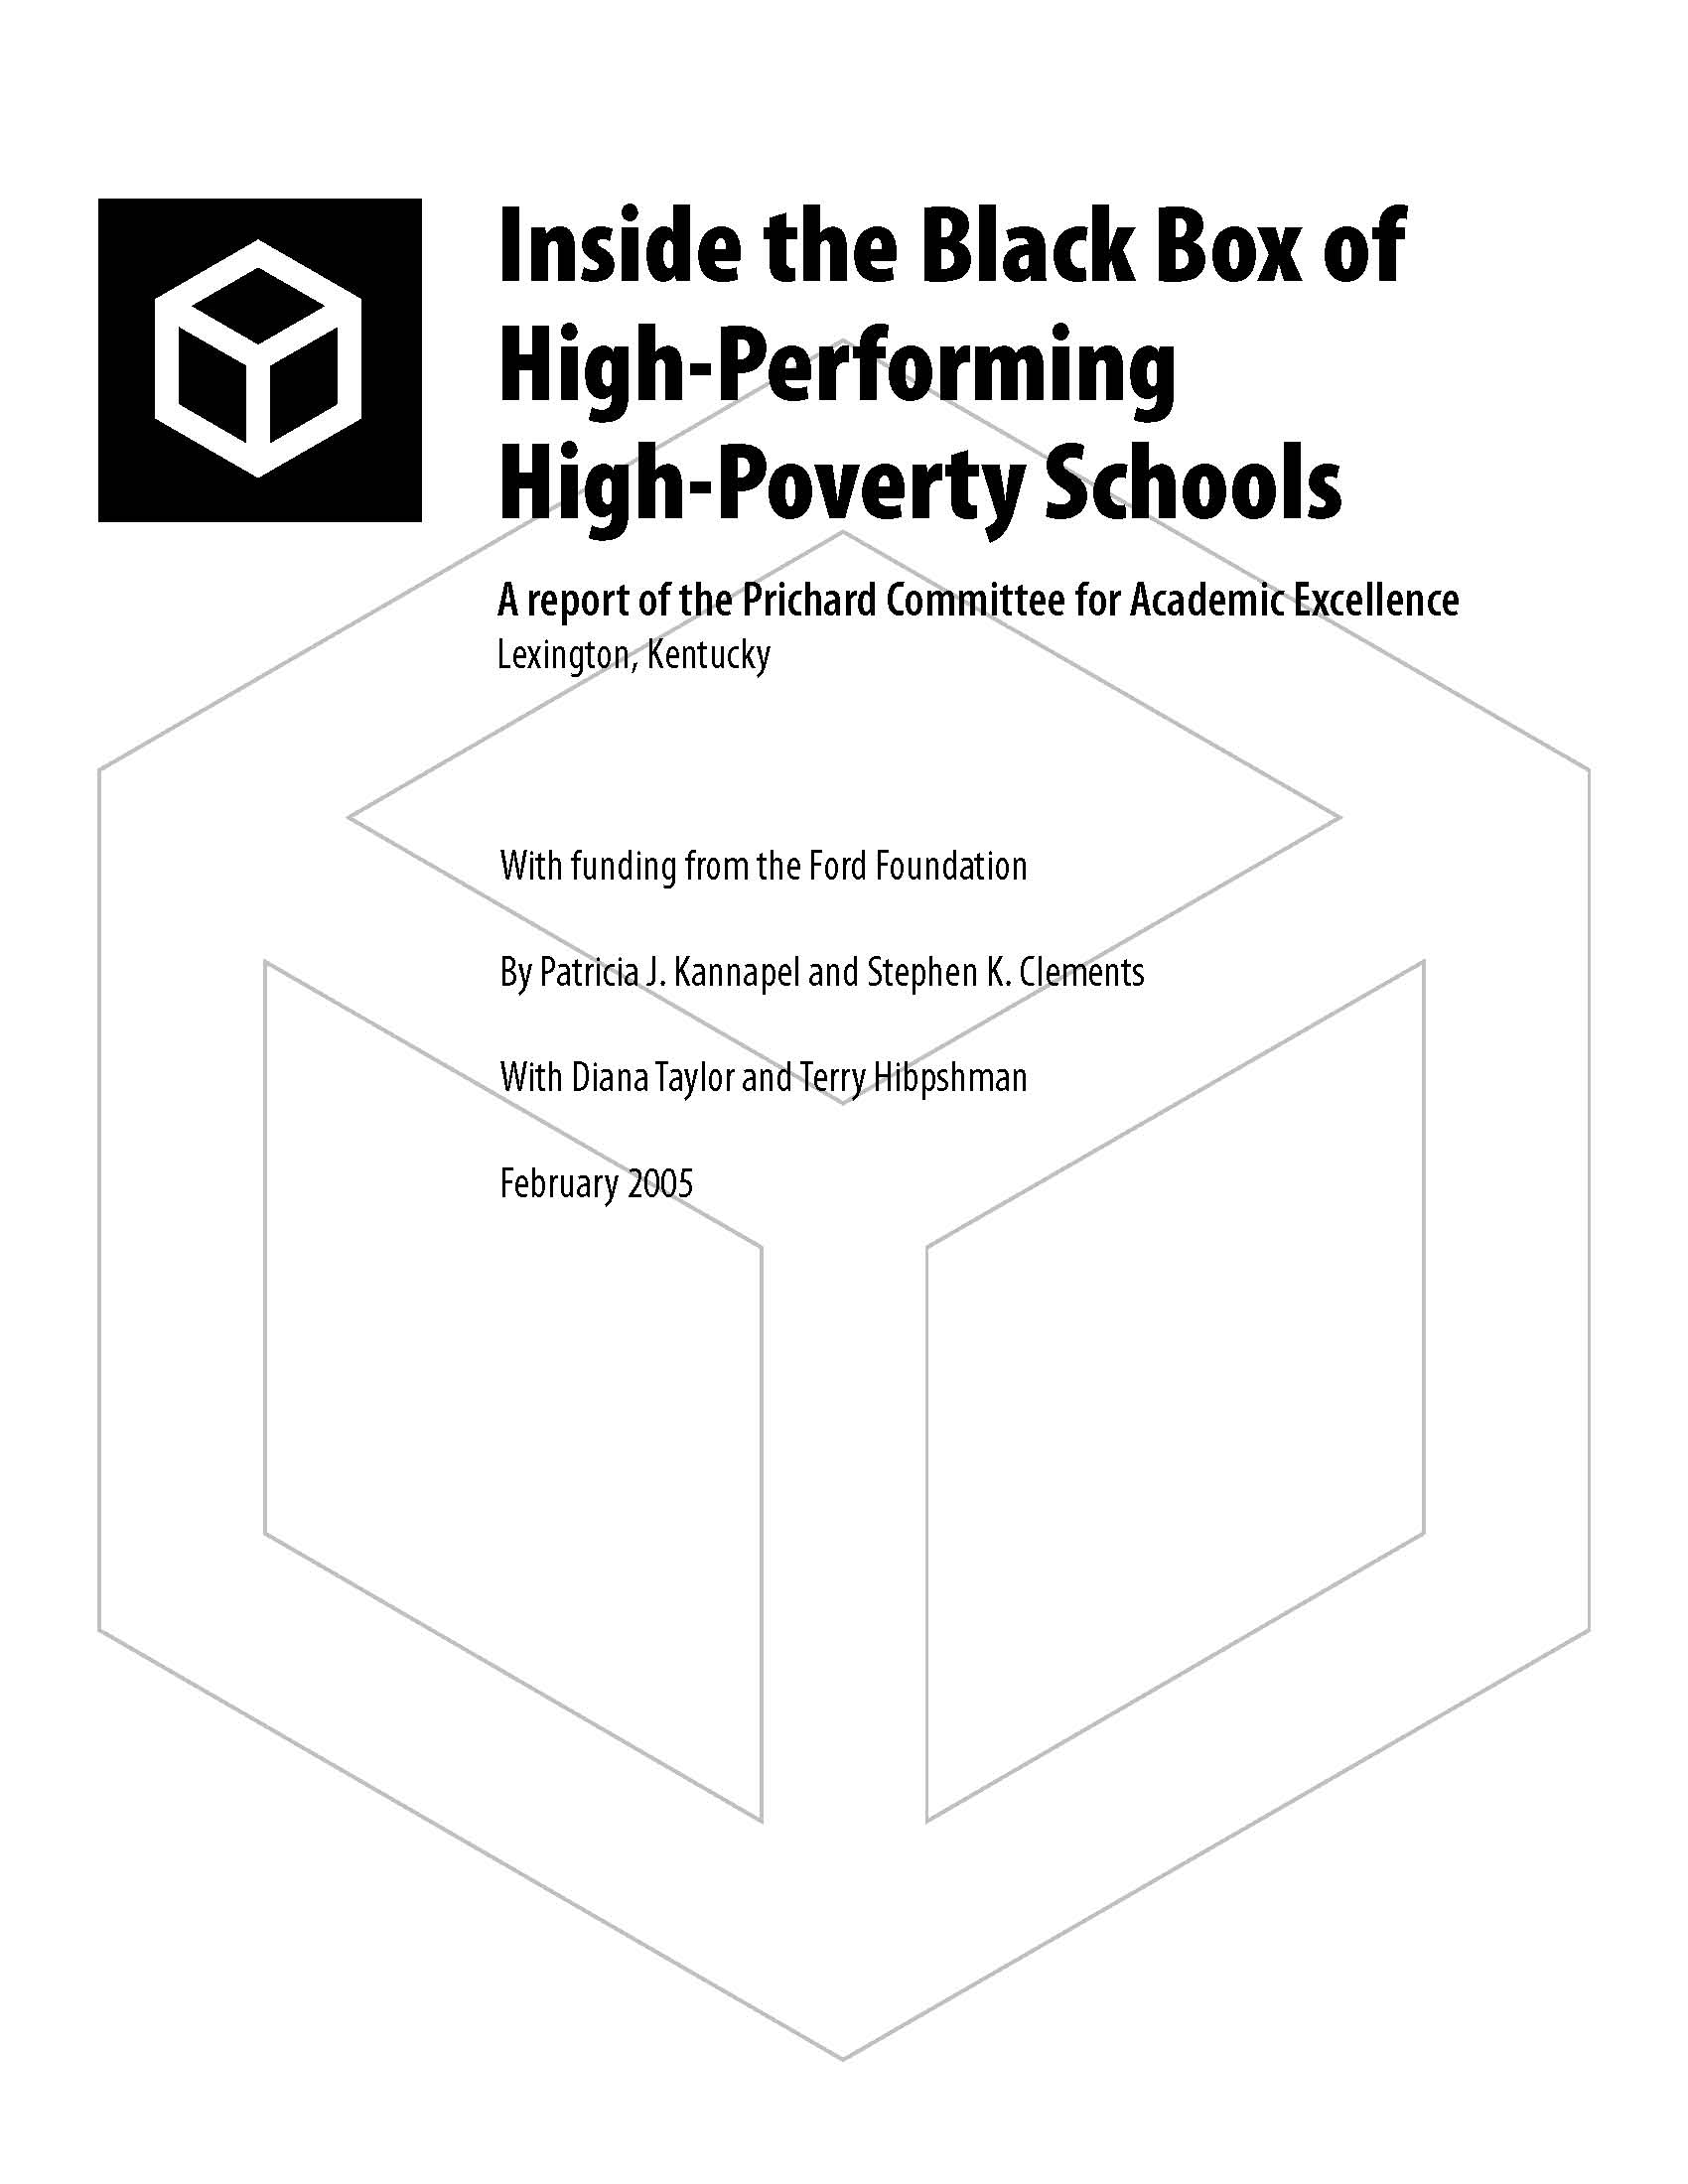 Inside the Black Box: High Performing, High Poverty Schools